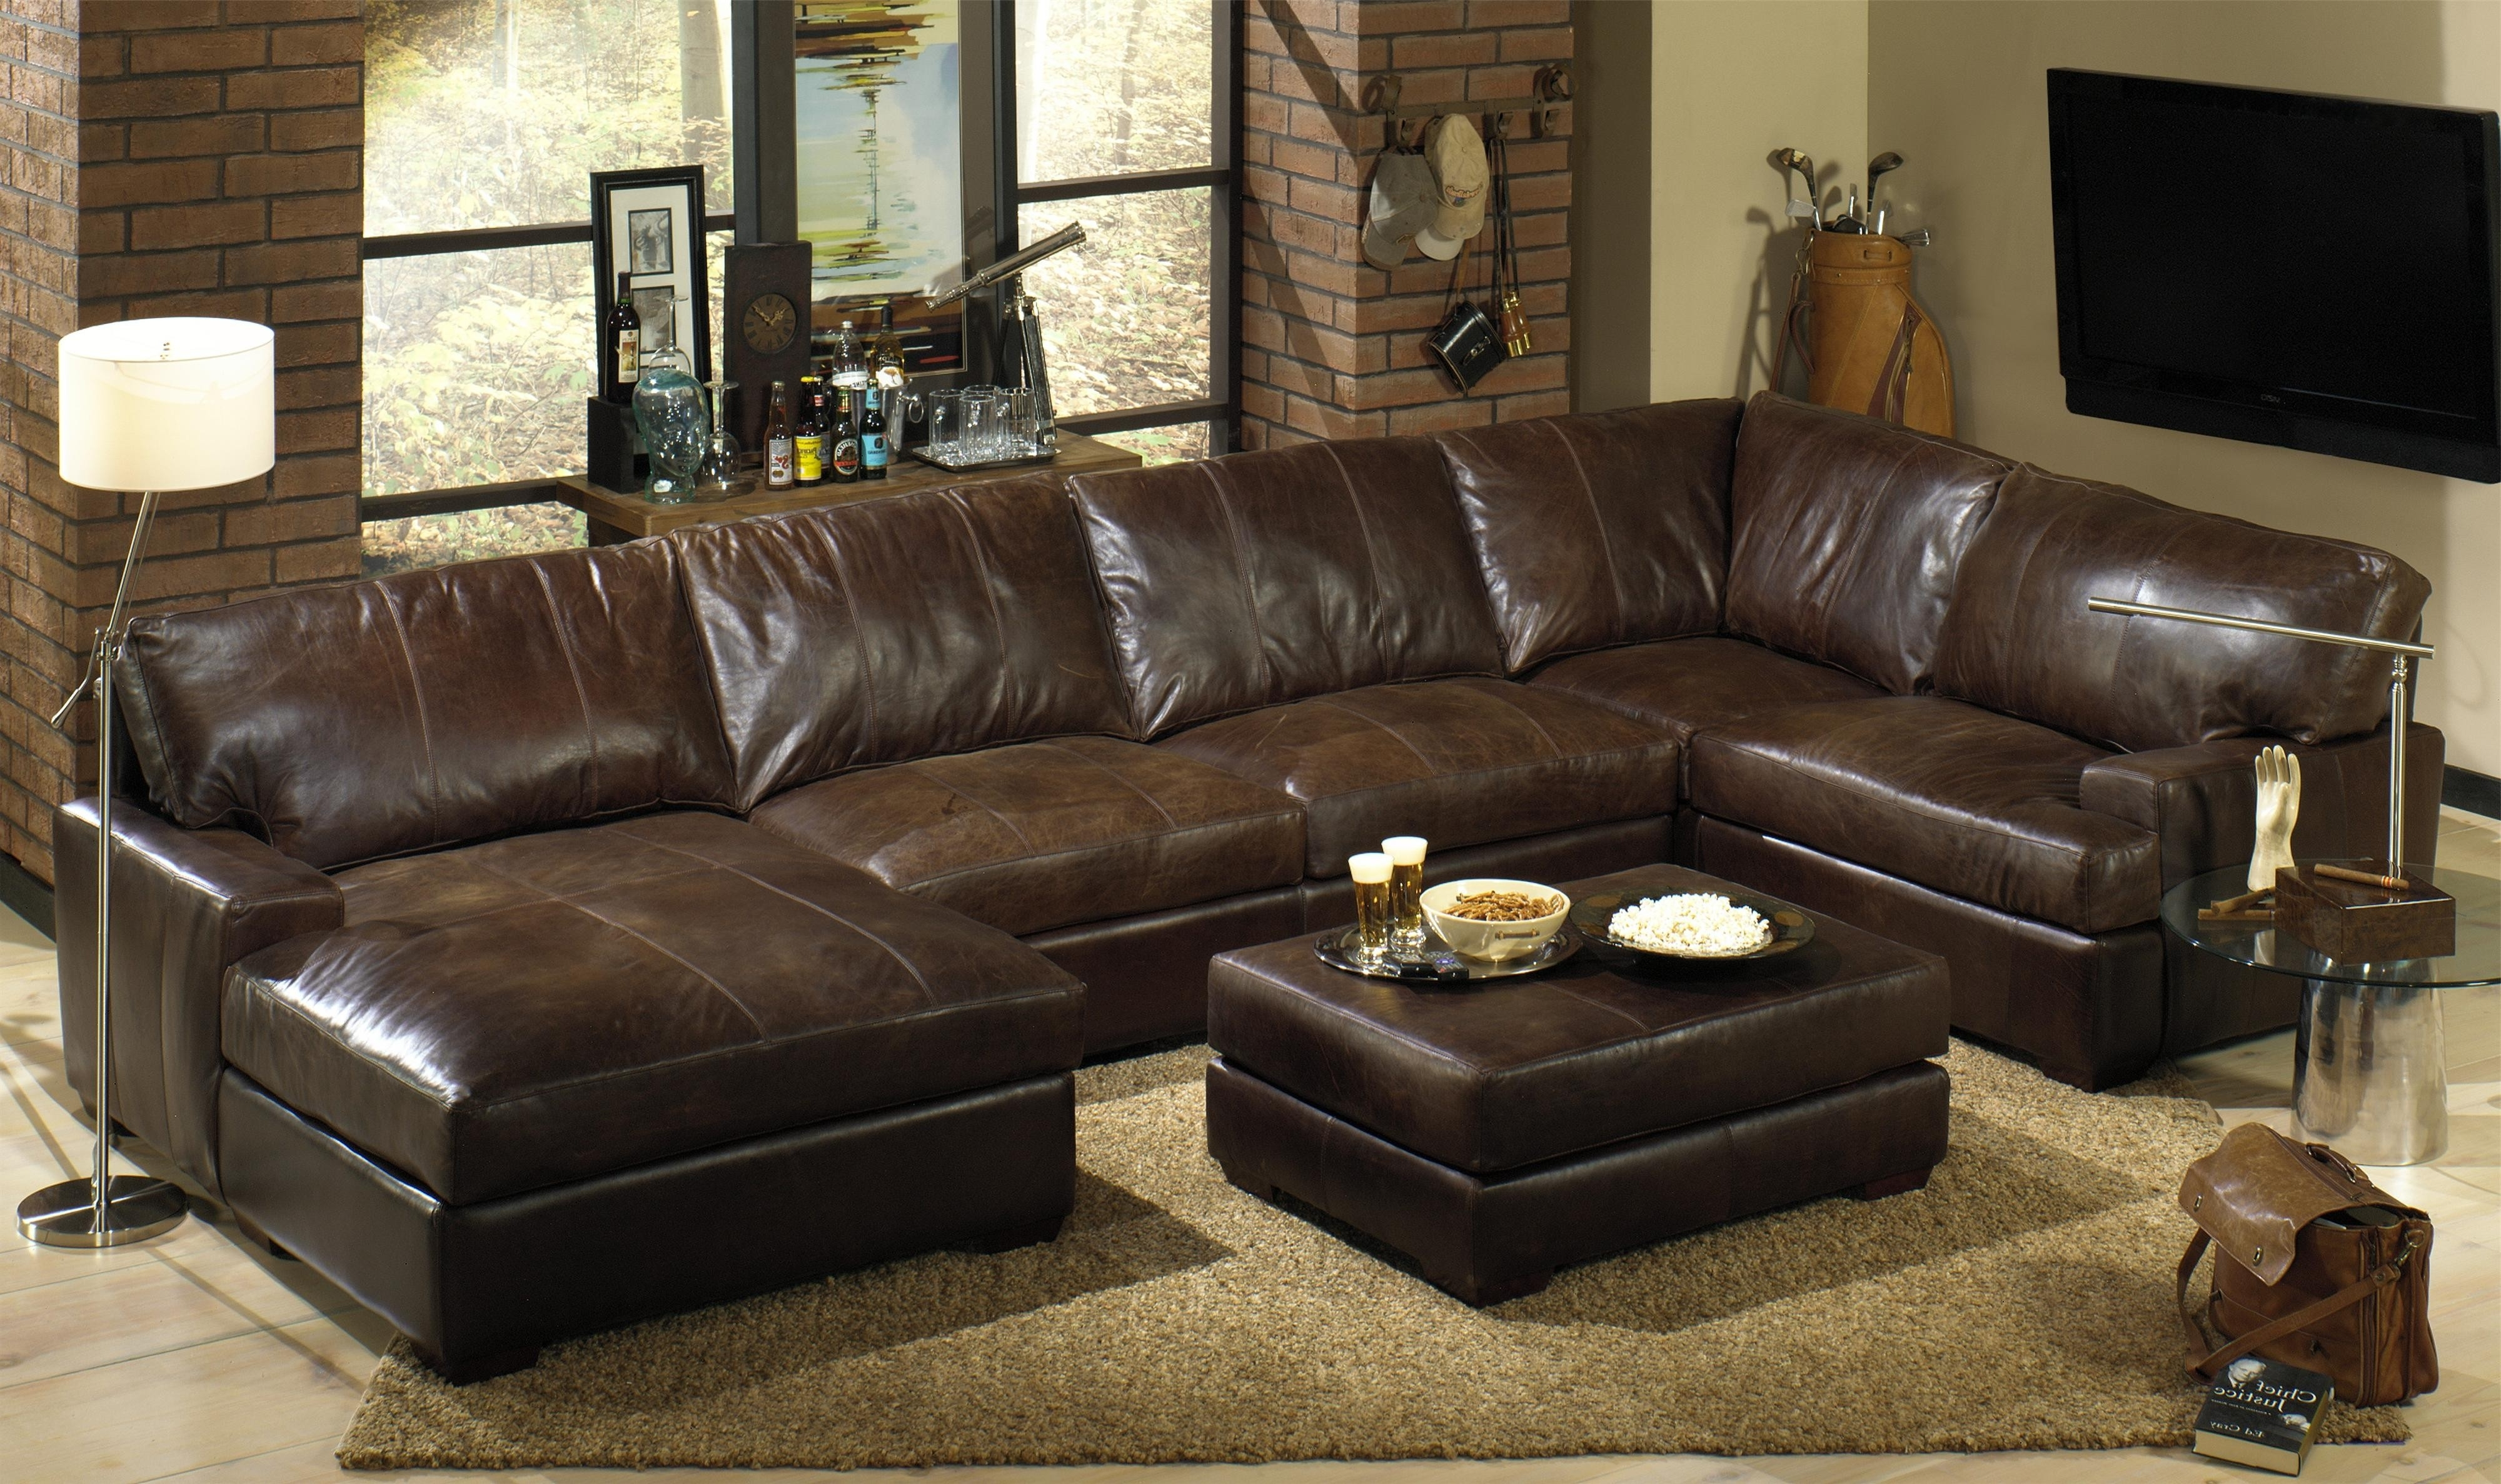 Luxury Brown Sectional Sofa With Chaise – Buildsimplehome With Regard To Most Current Chocolate Brown Sectional Sofas (View 6 of 20)